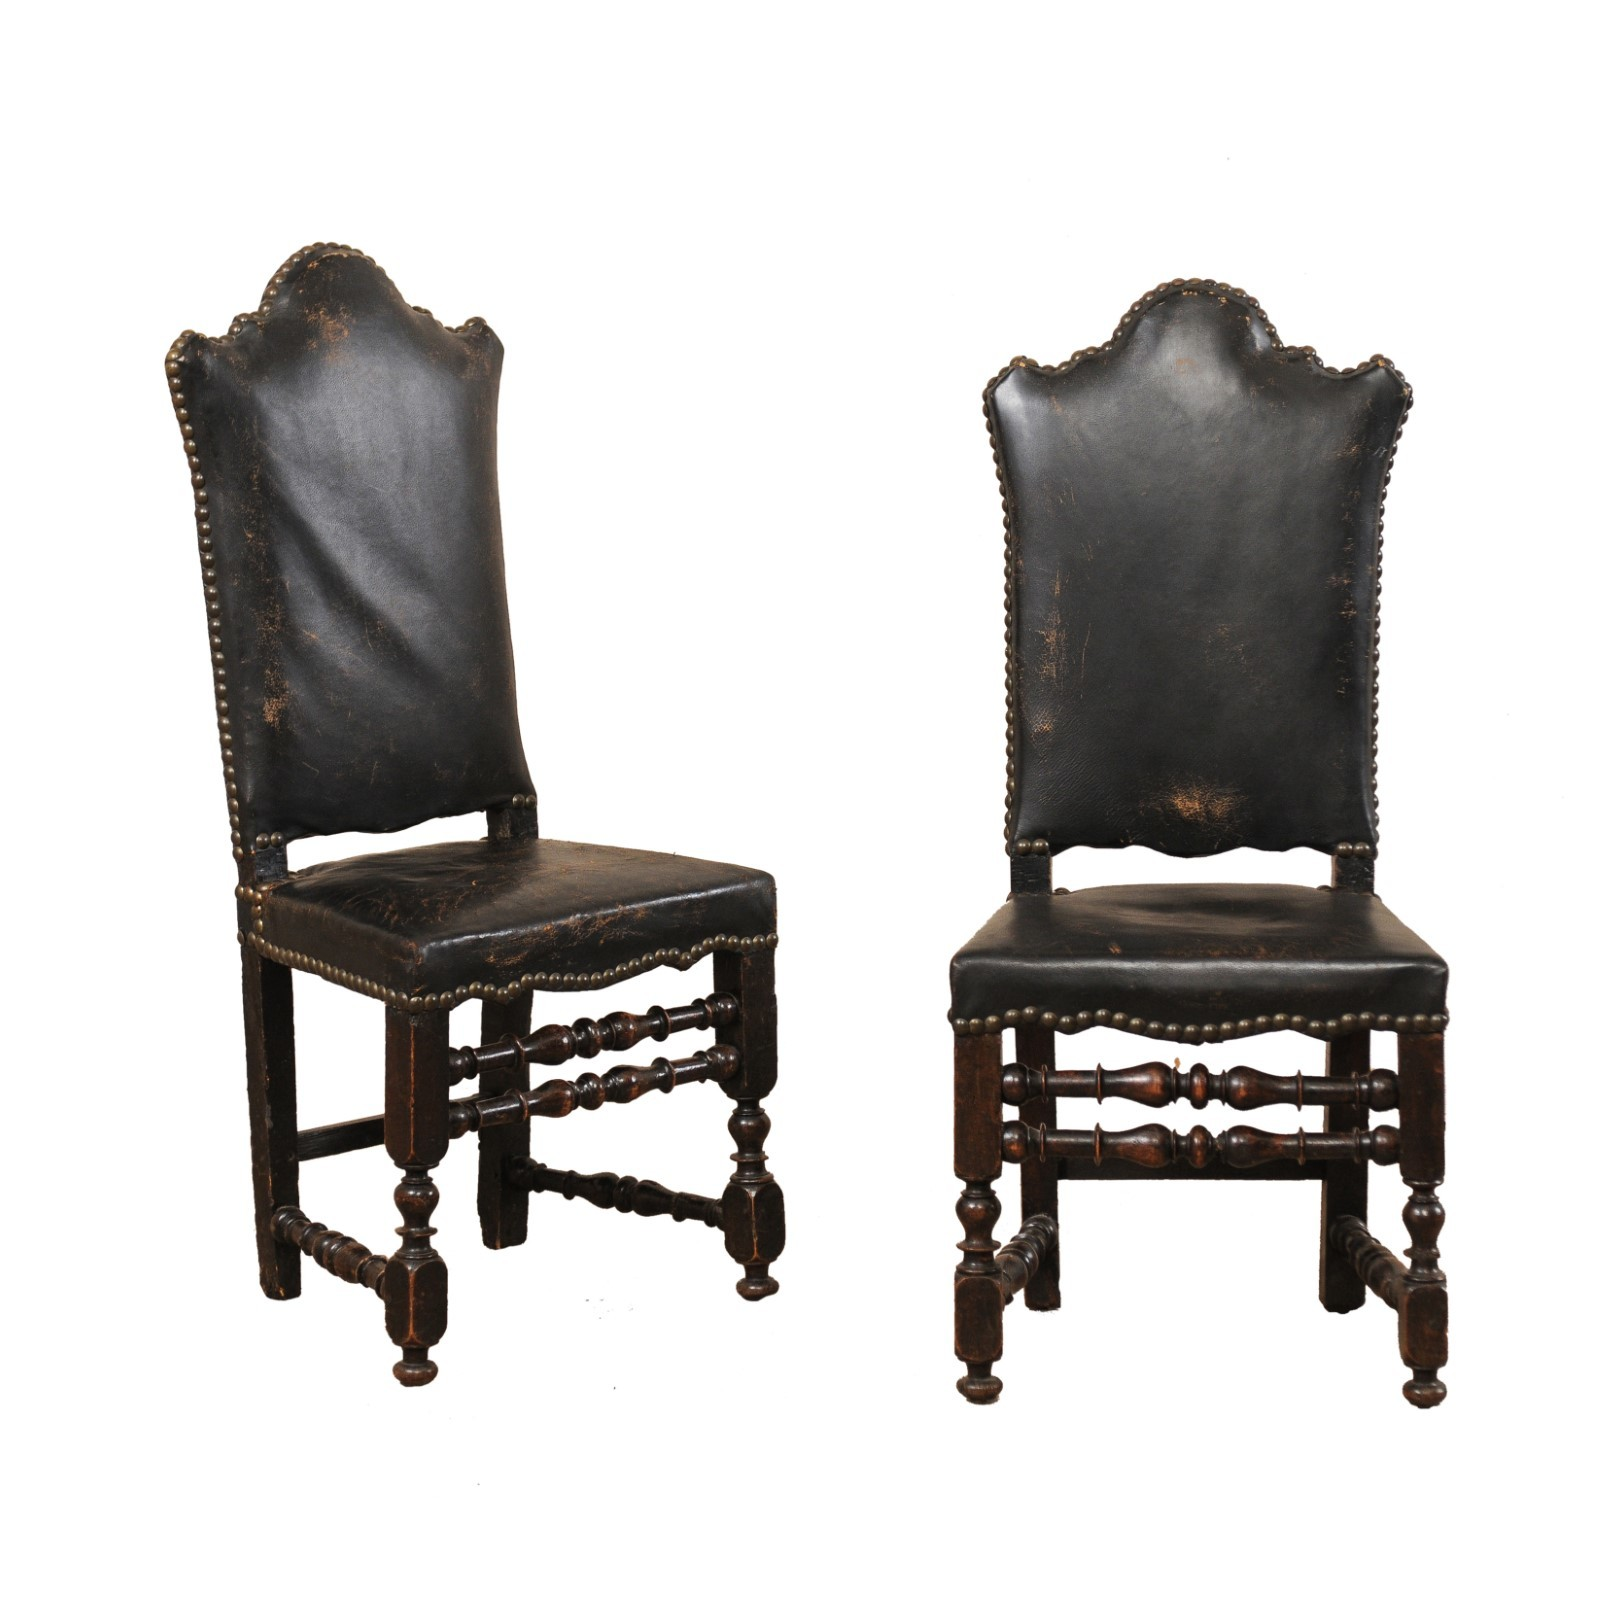 18th C. Italian Tall Back Hall Chairs